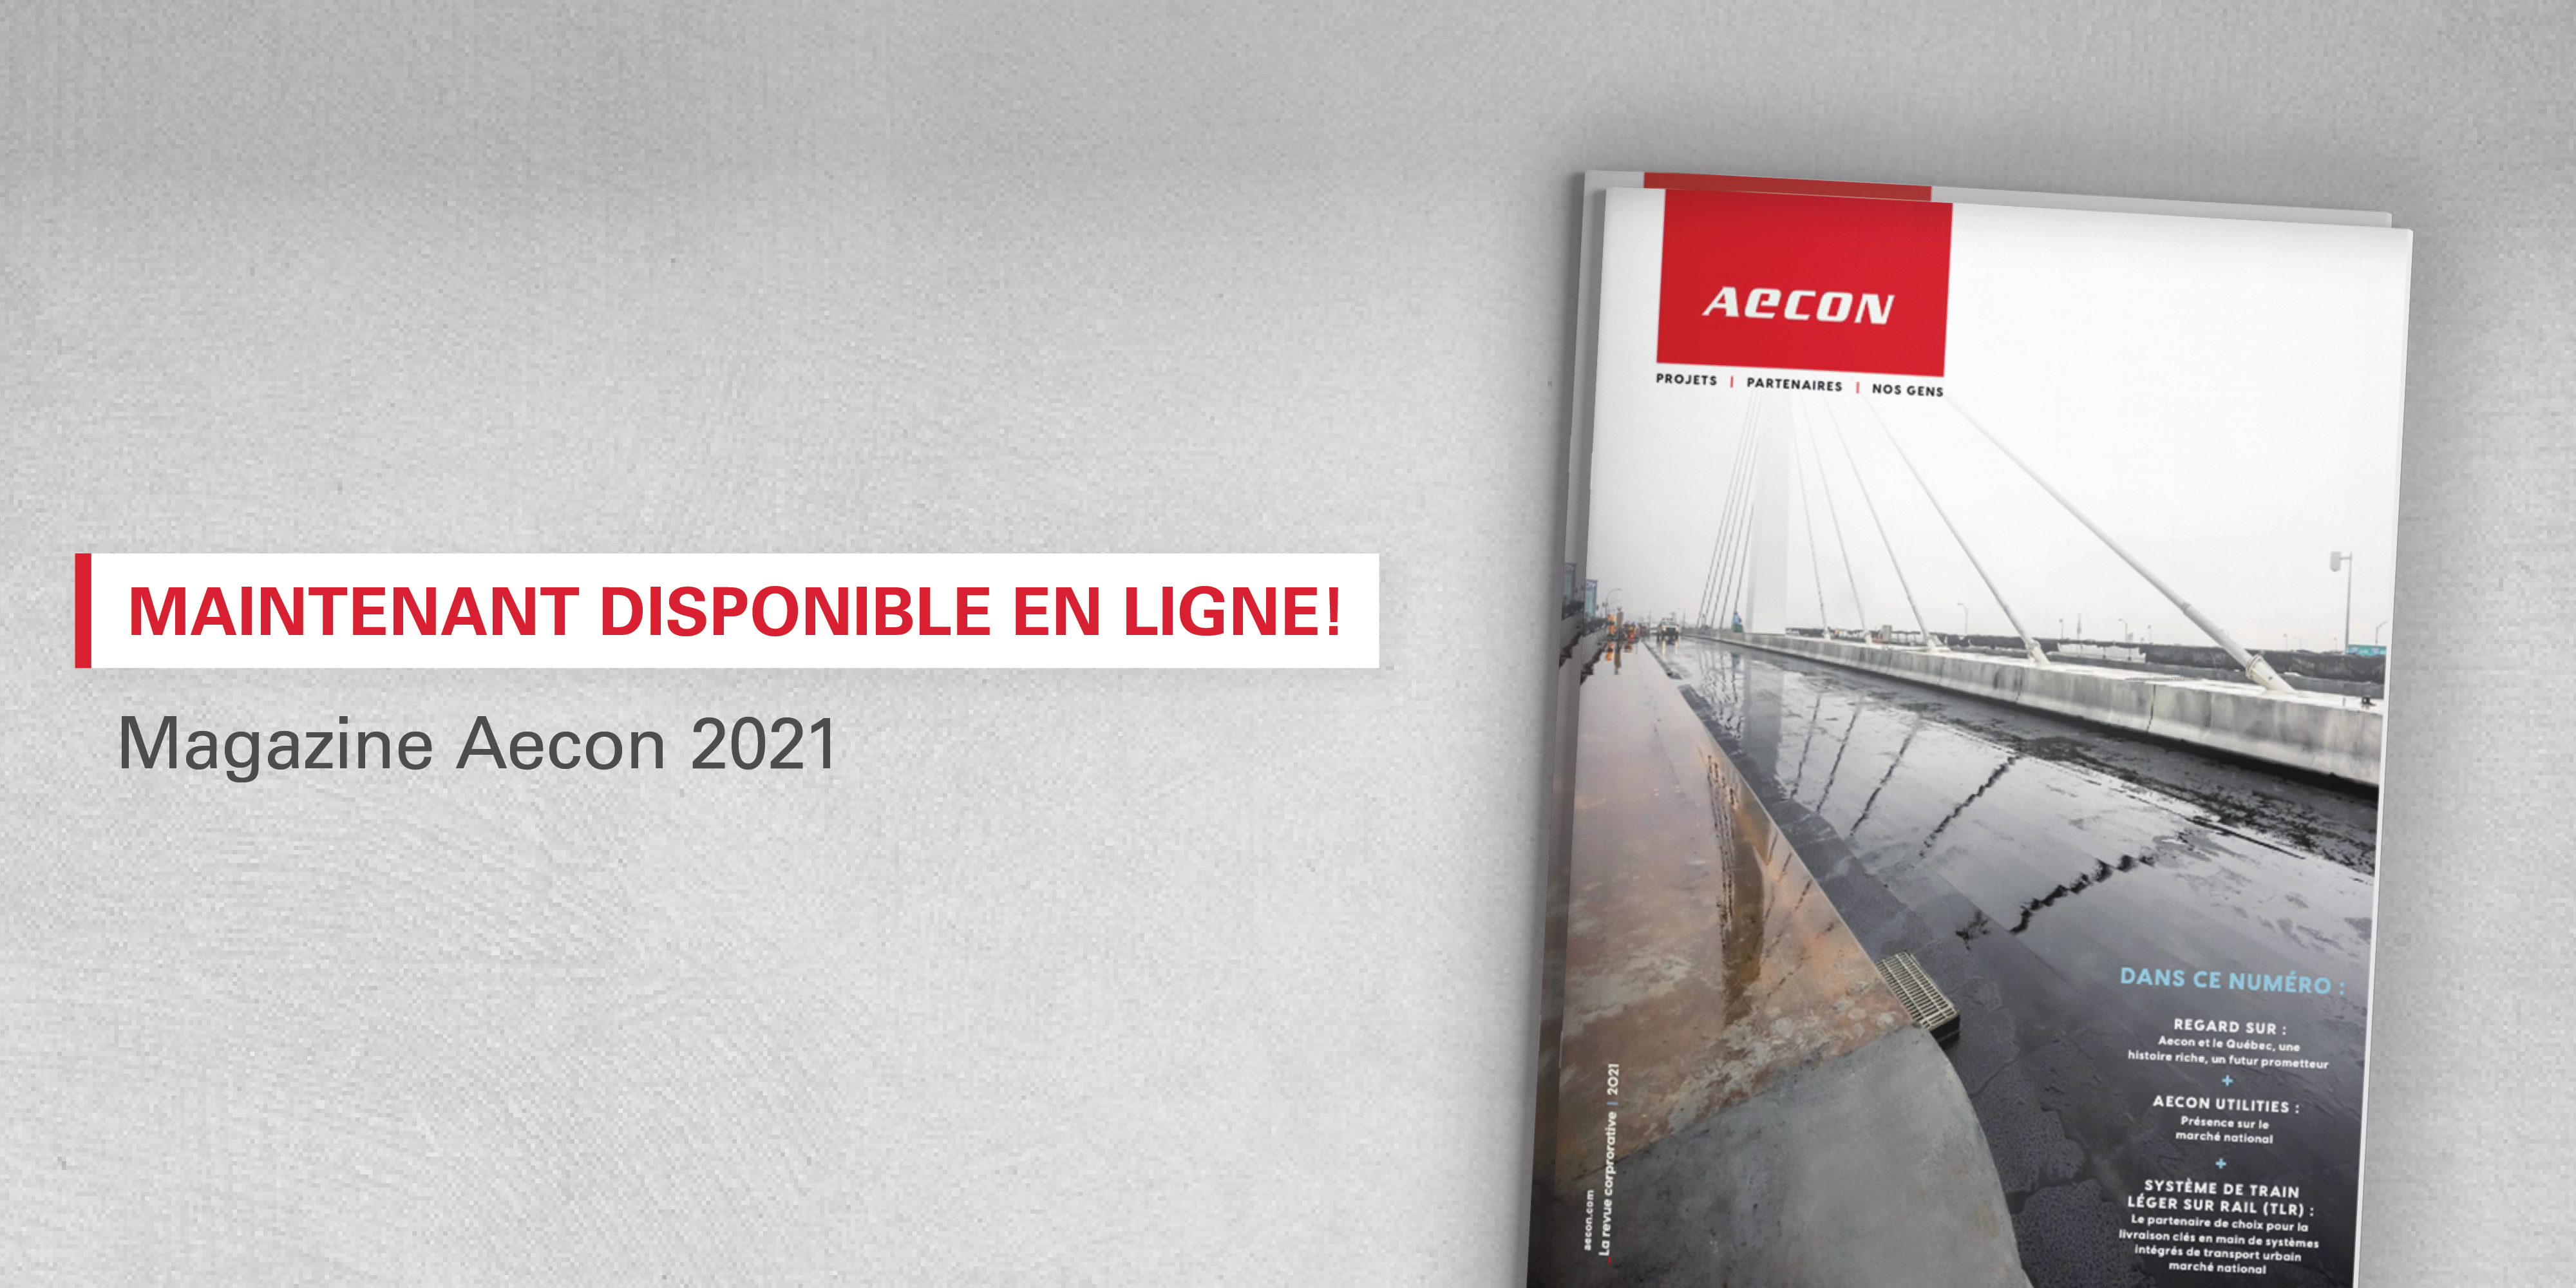 Aecon Magazine in French